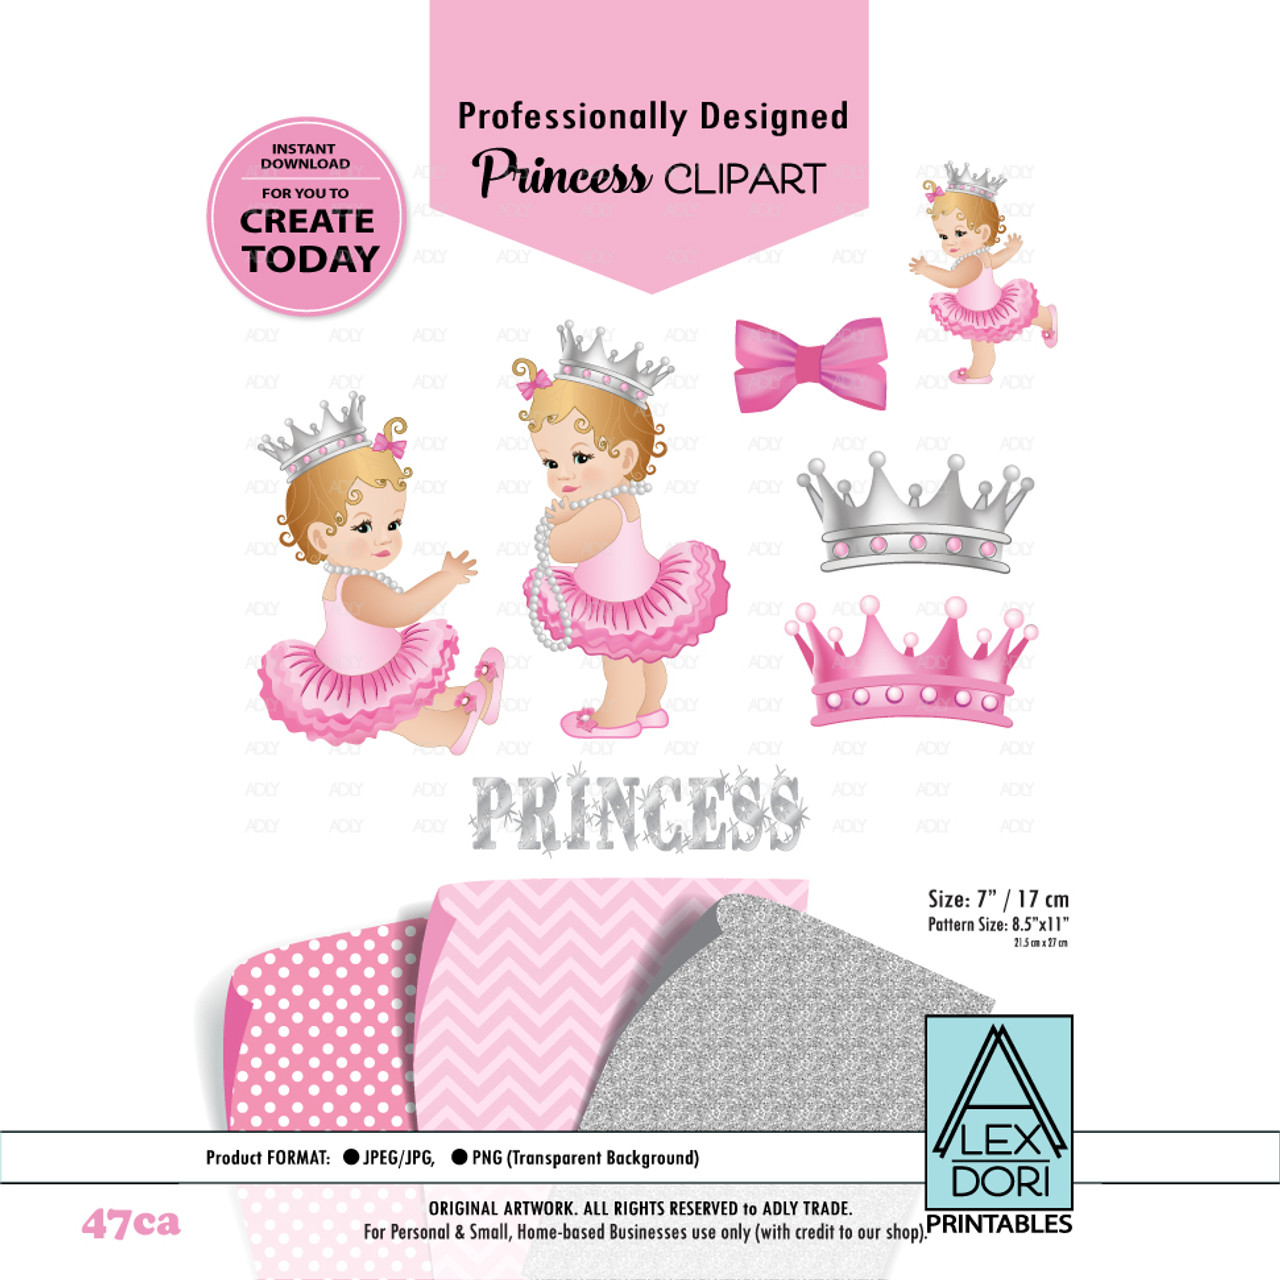 princess baby shower digital clipart pink and gray clipart royal baby shower crowns tiara clipart adly invitations and digital party designs [ 971 x 971 Pixel ]